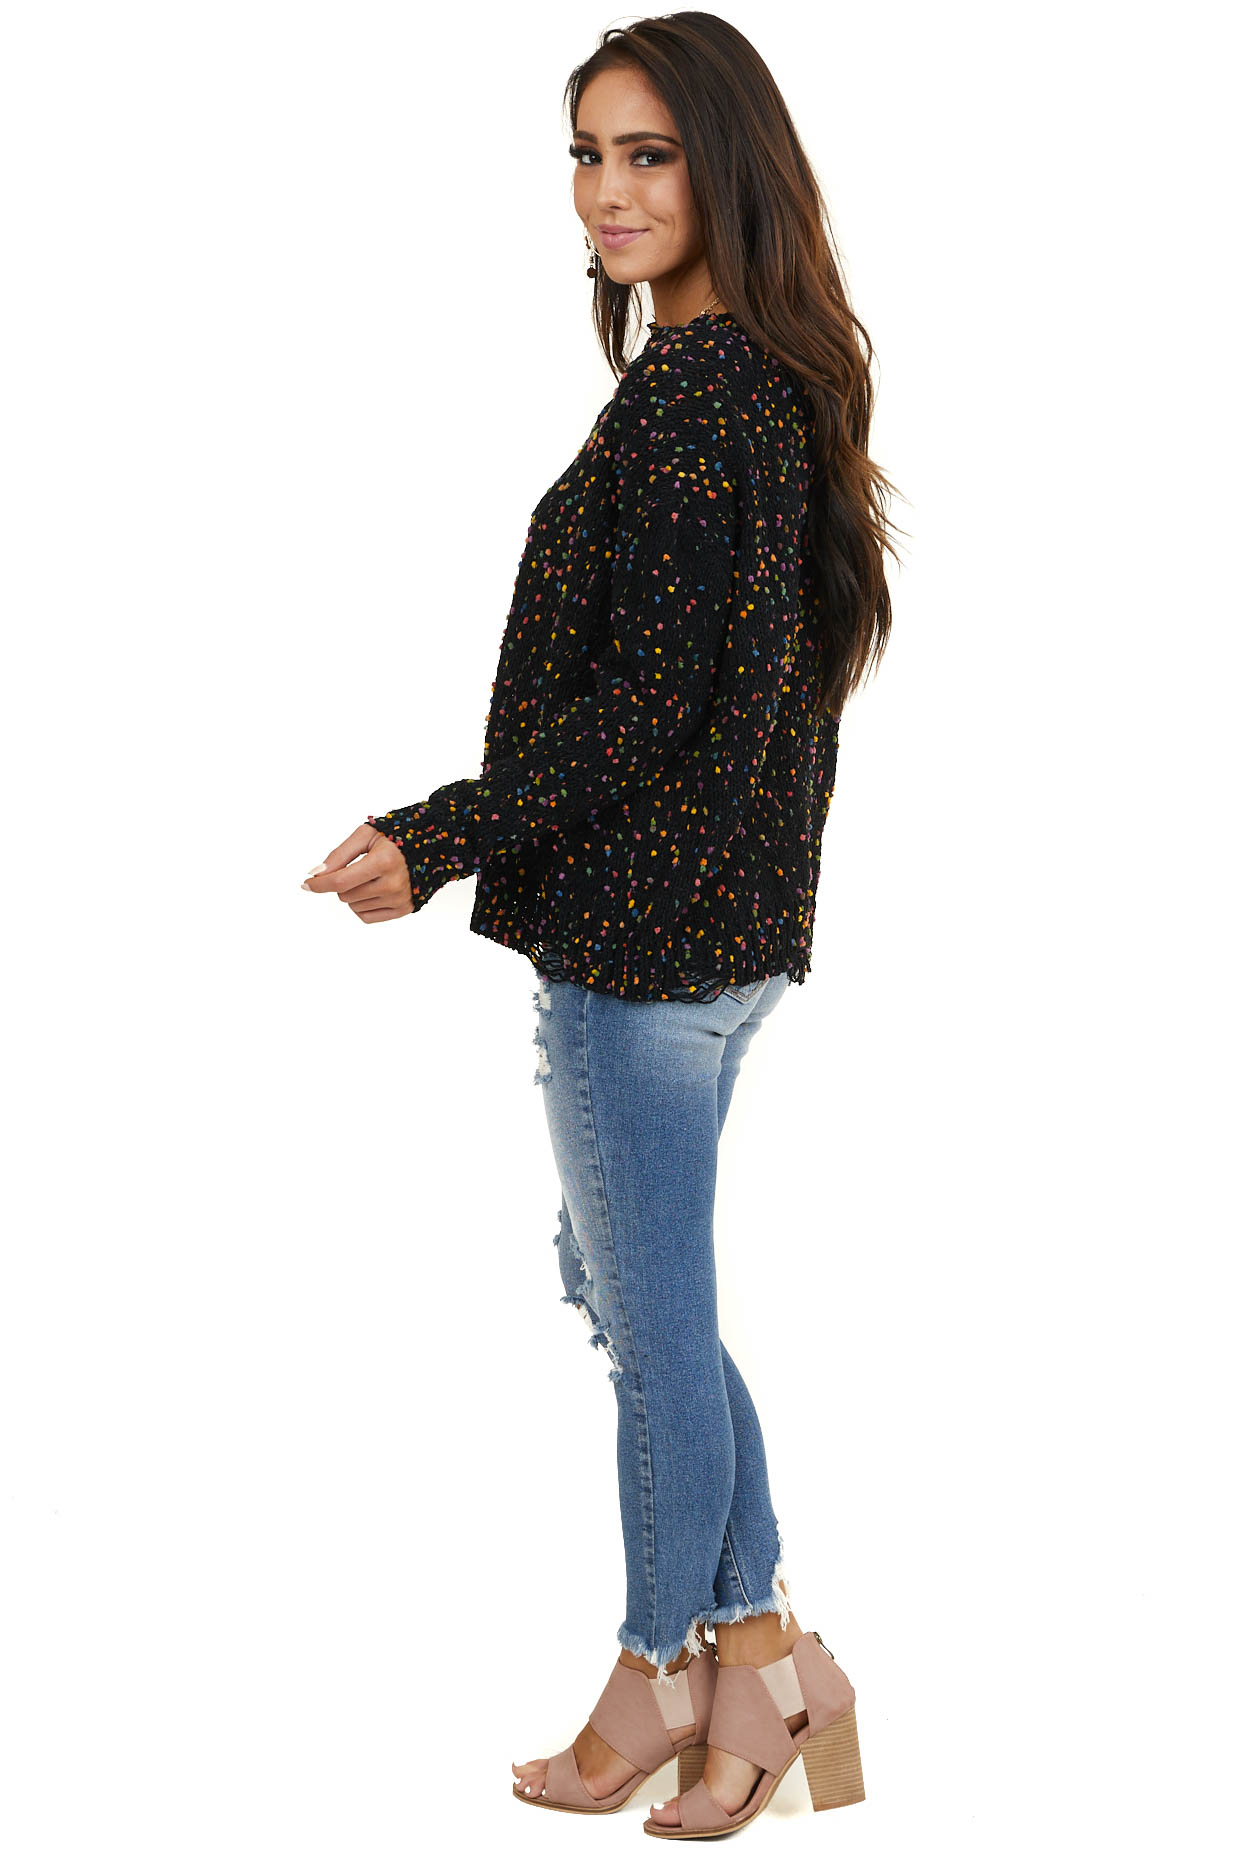 Black Sweater with Rainbow Speckles and Distressed Detail